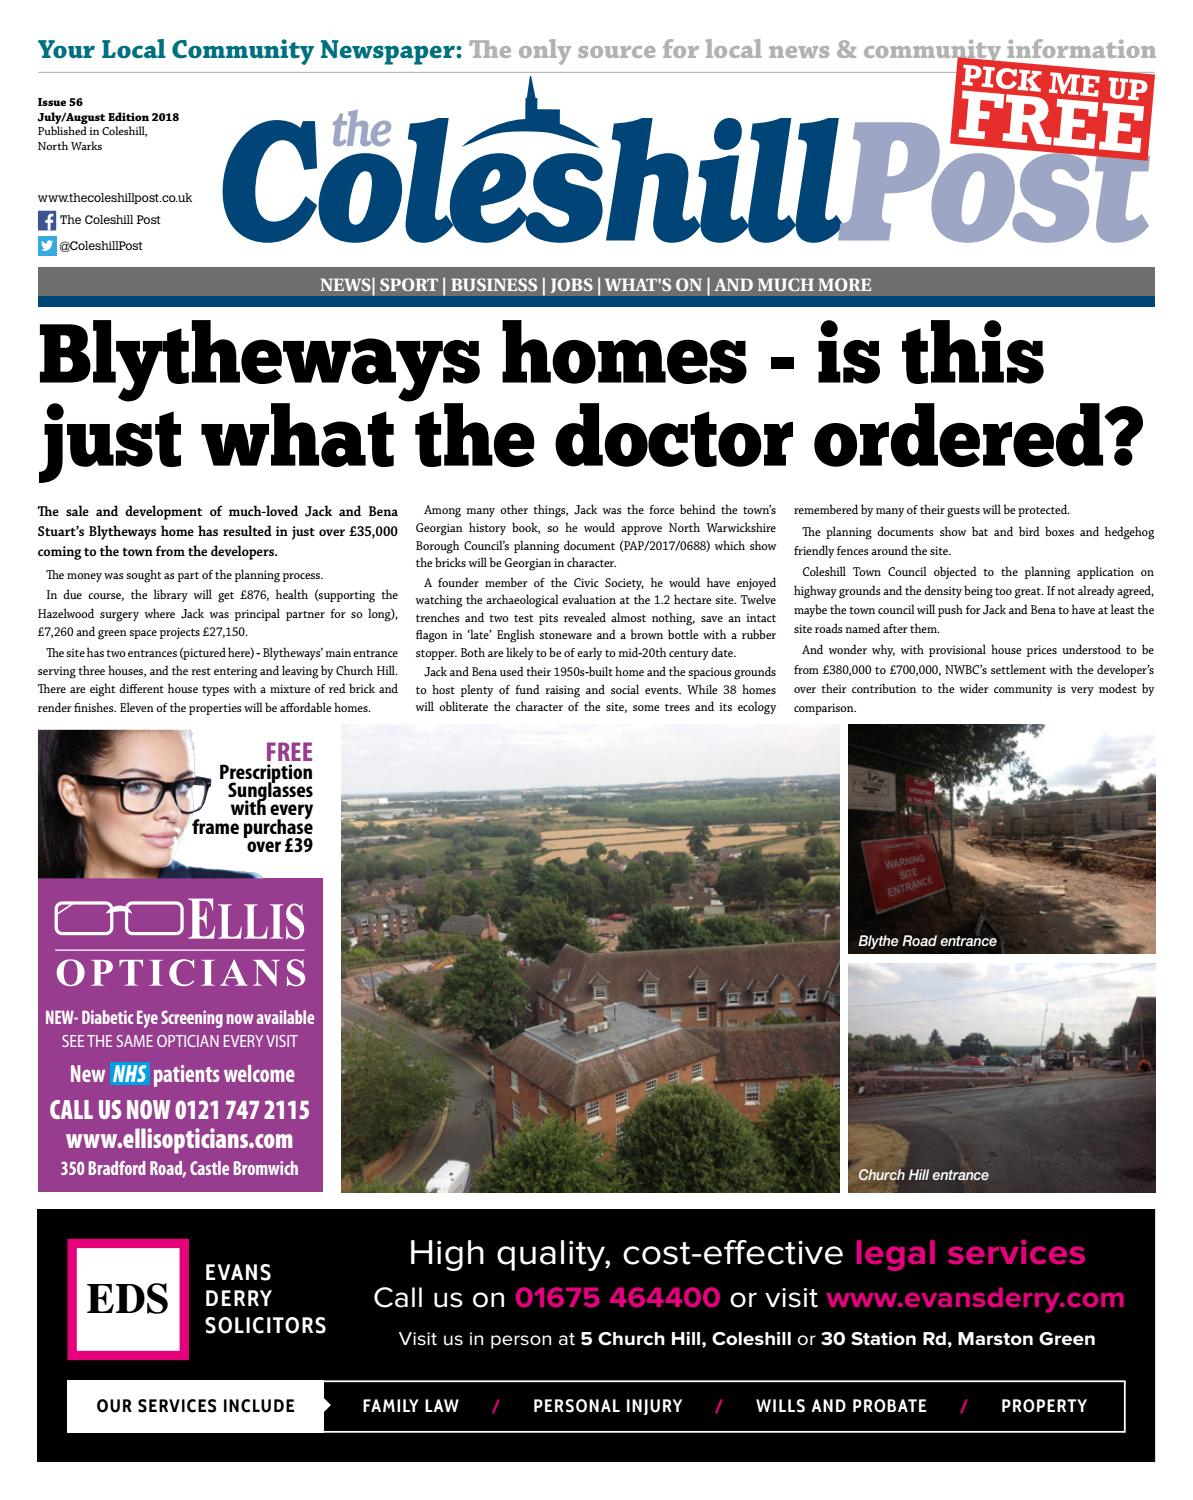 Coleshill Post July 2018 by Serena Smith - issuu